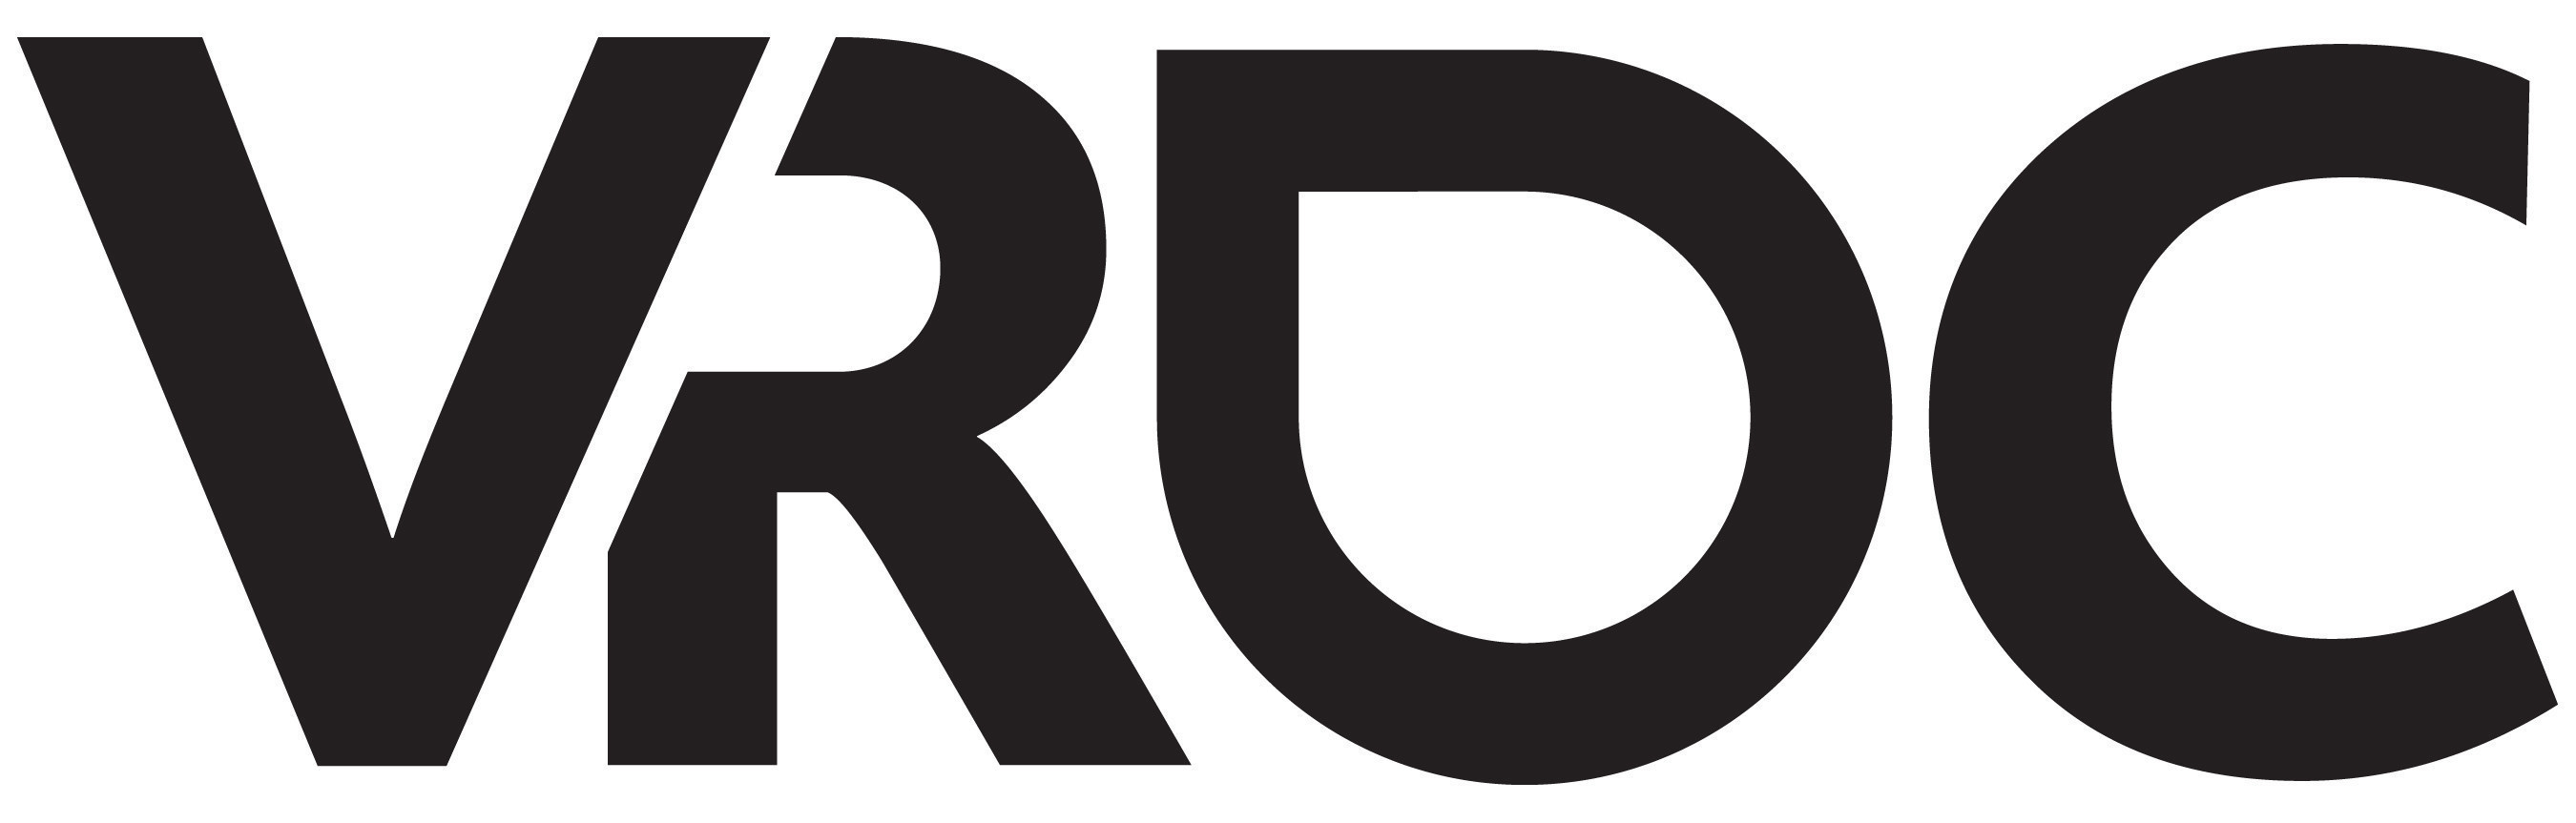 Virtual Reality Developers Conference (VRDC) Announces First Standalone Event in November 2016